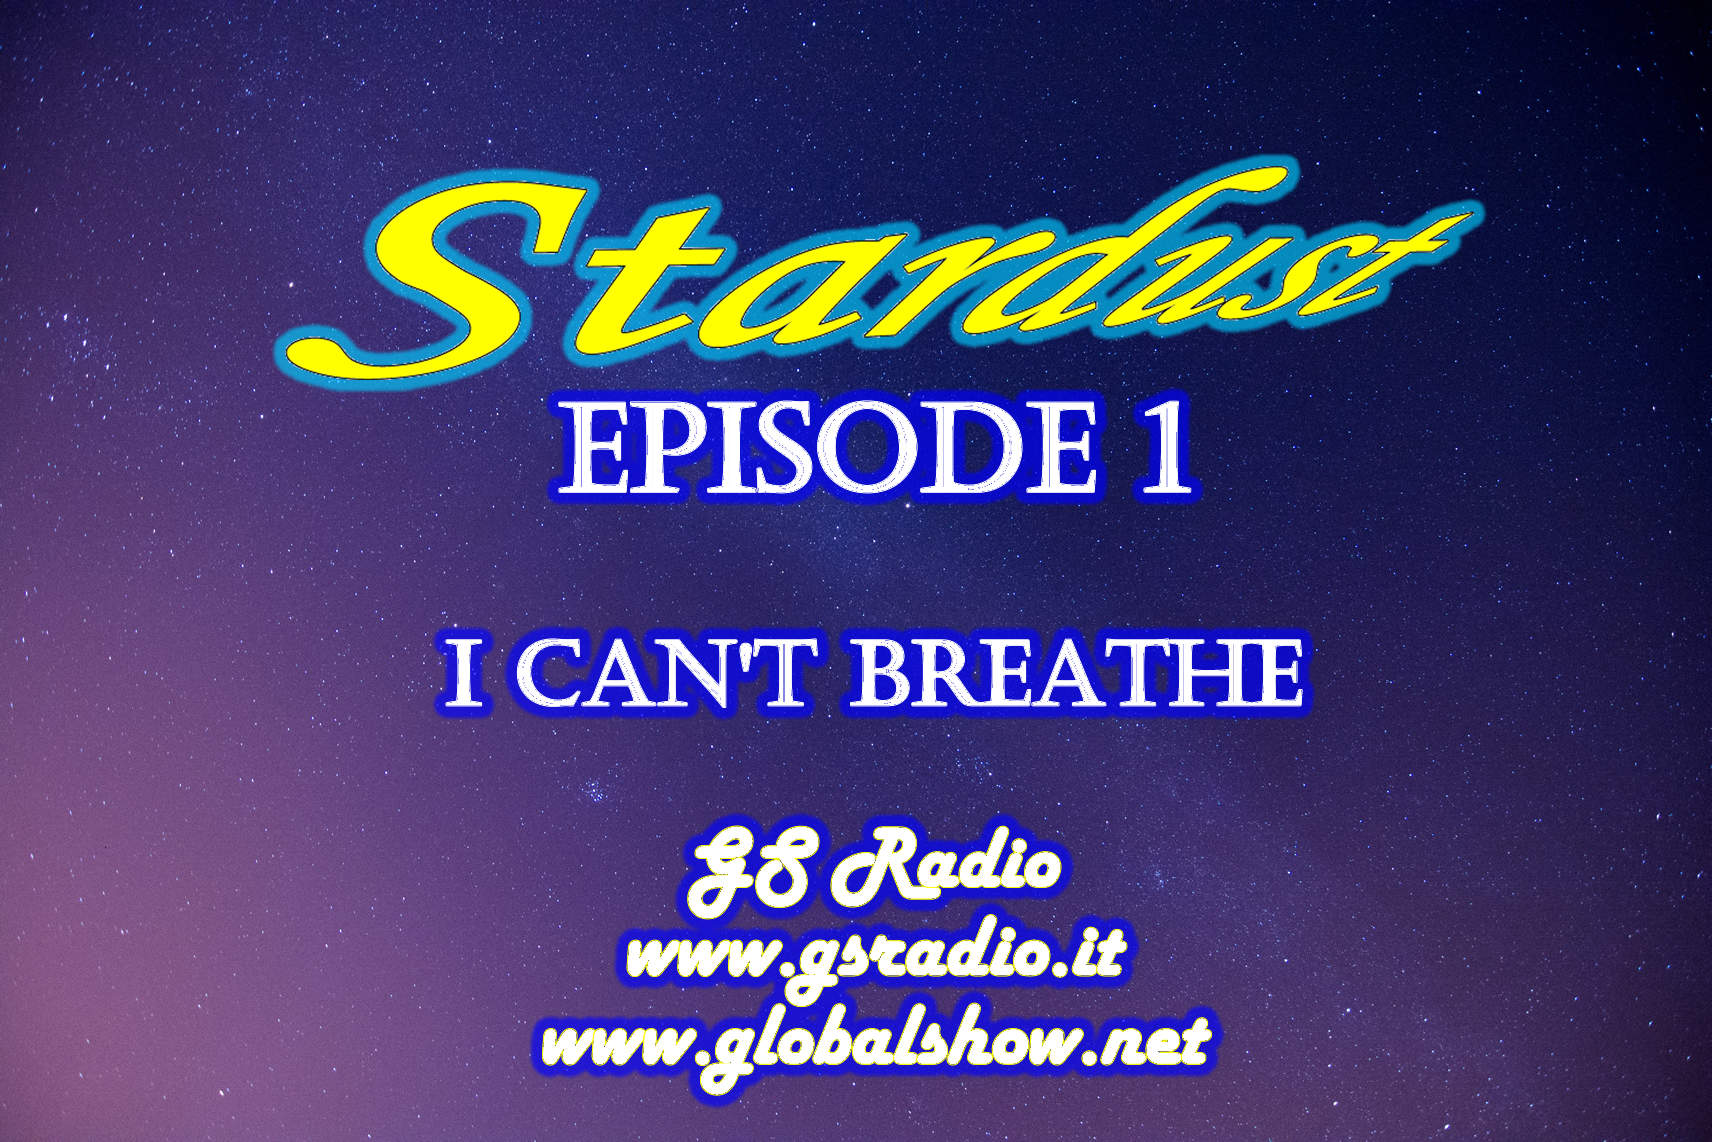 Episode 1 - I can't breathe